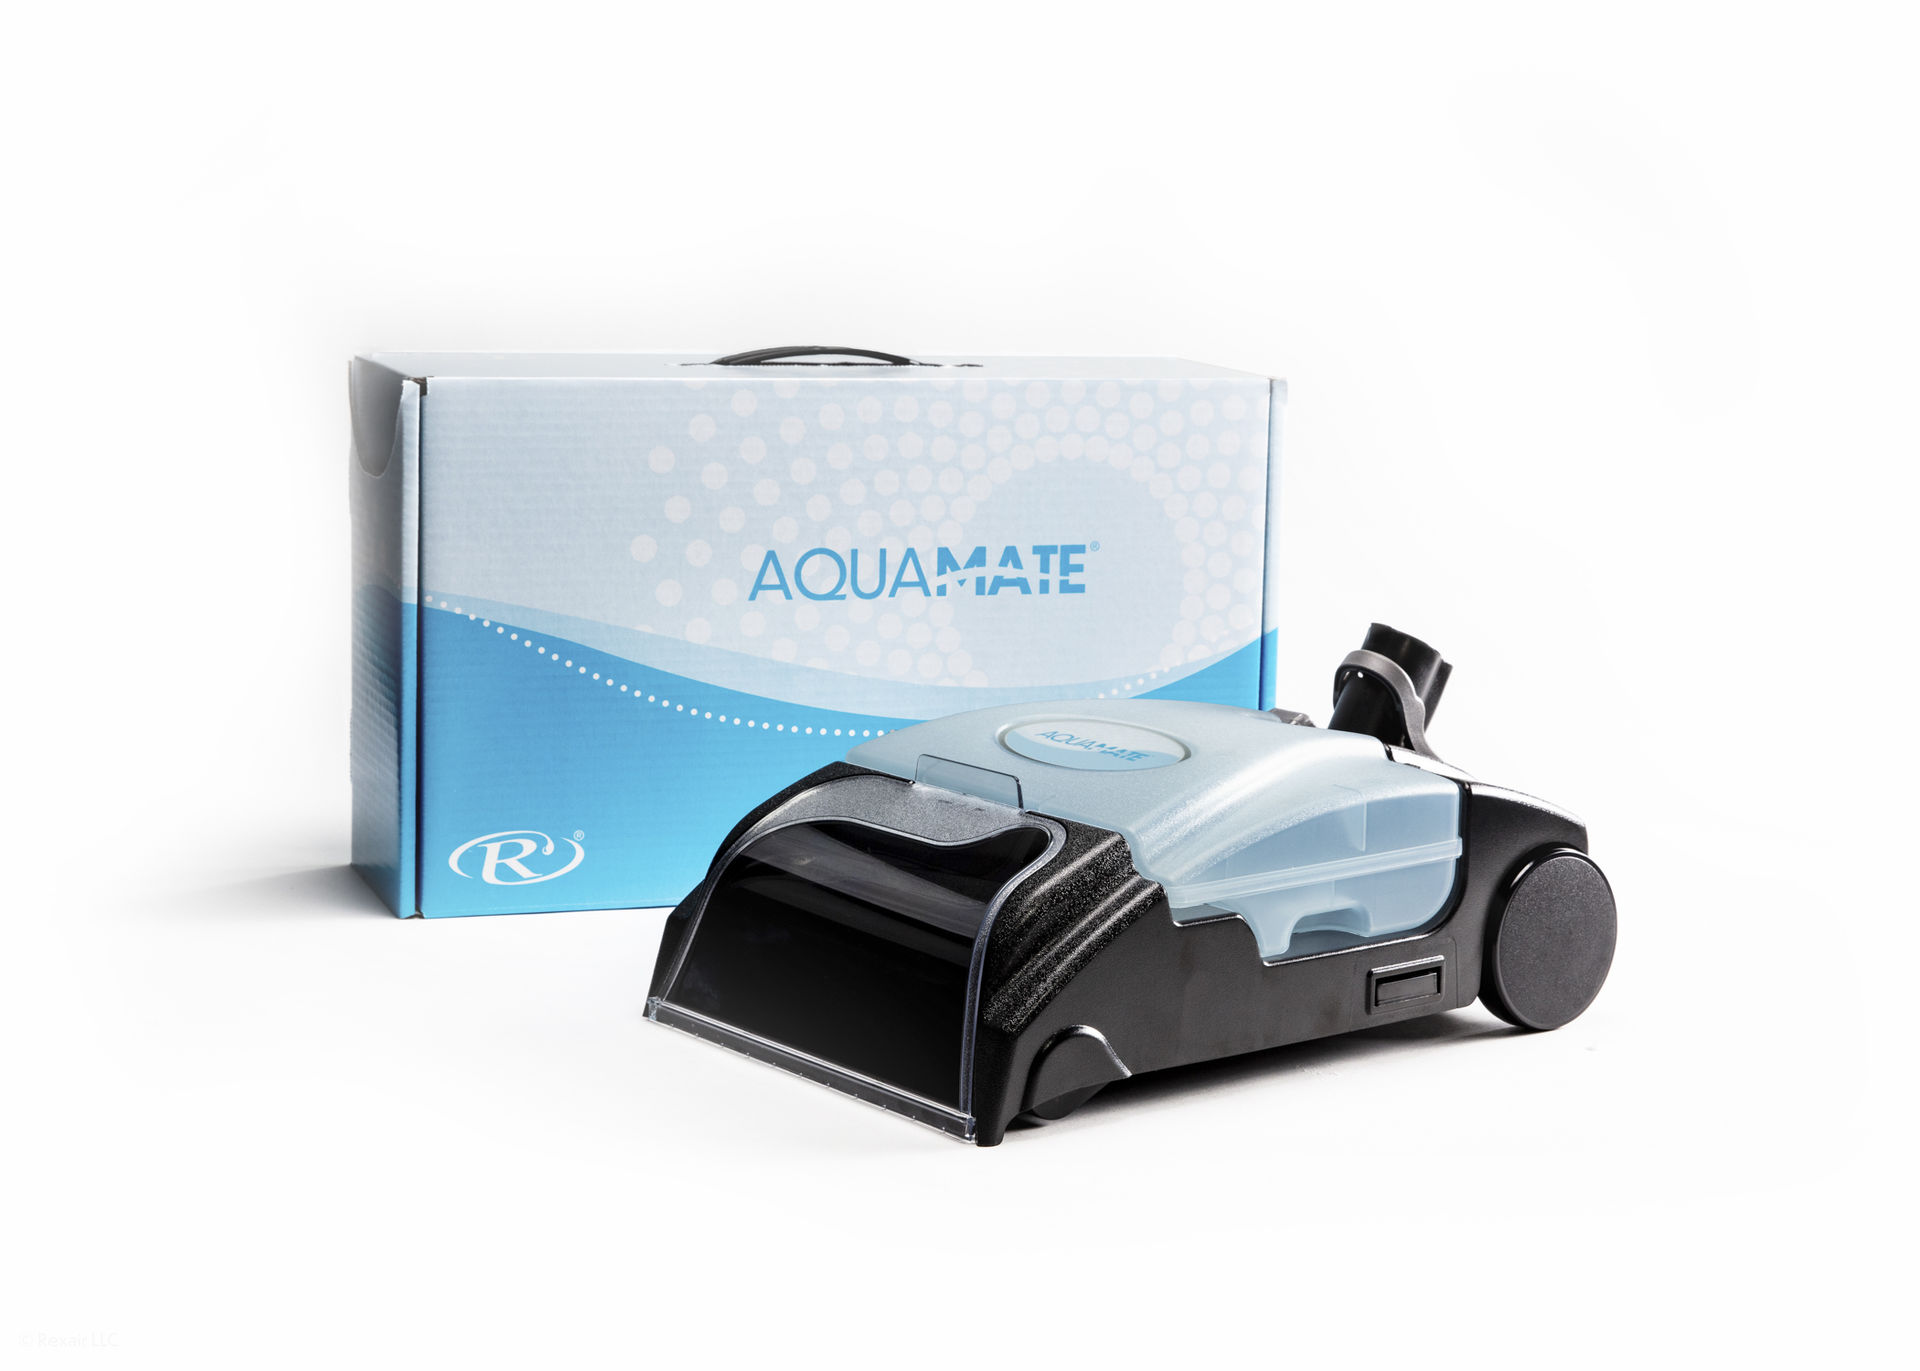 SRX AquaMate with Box.jpg